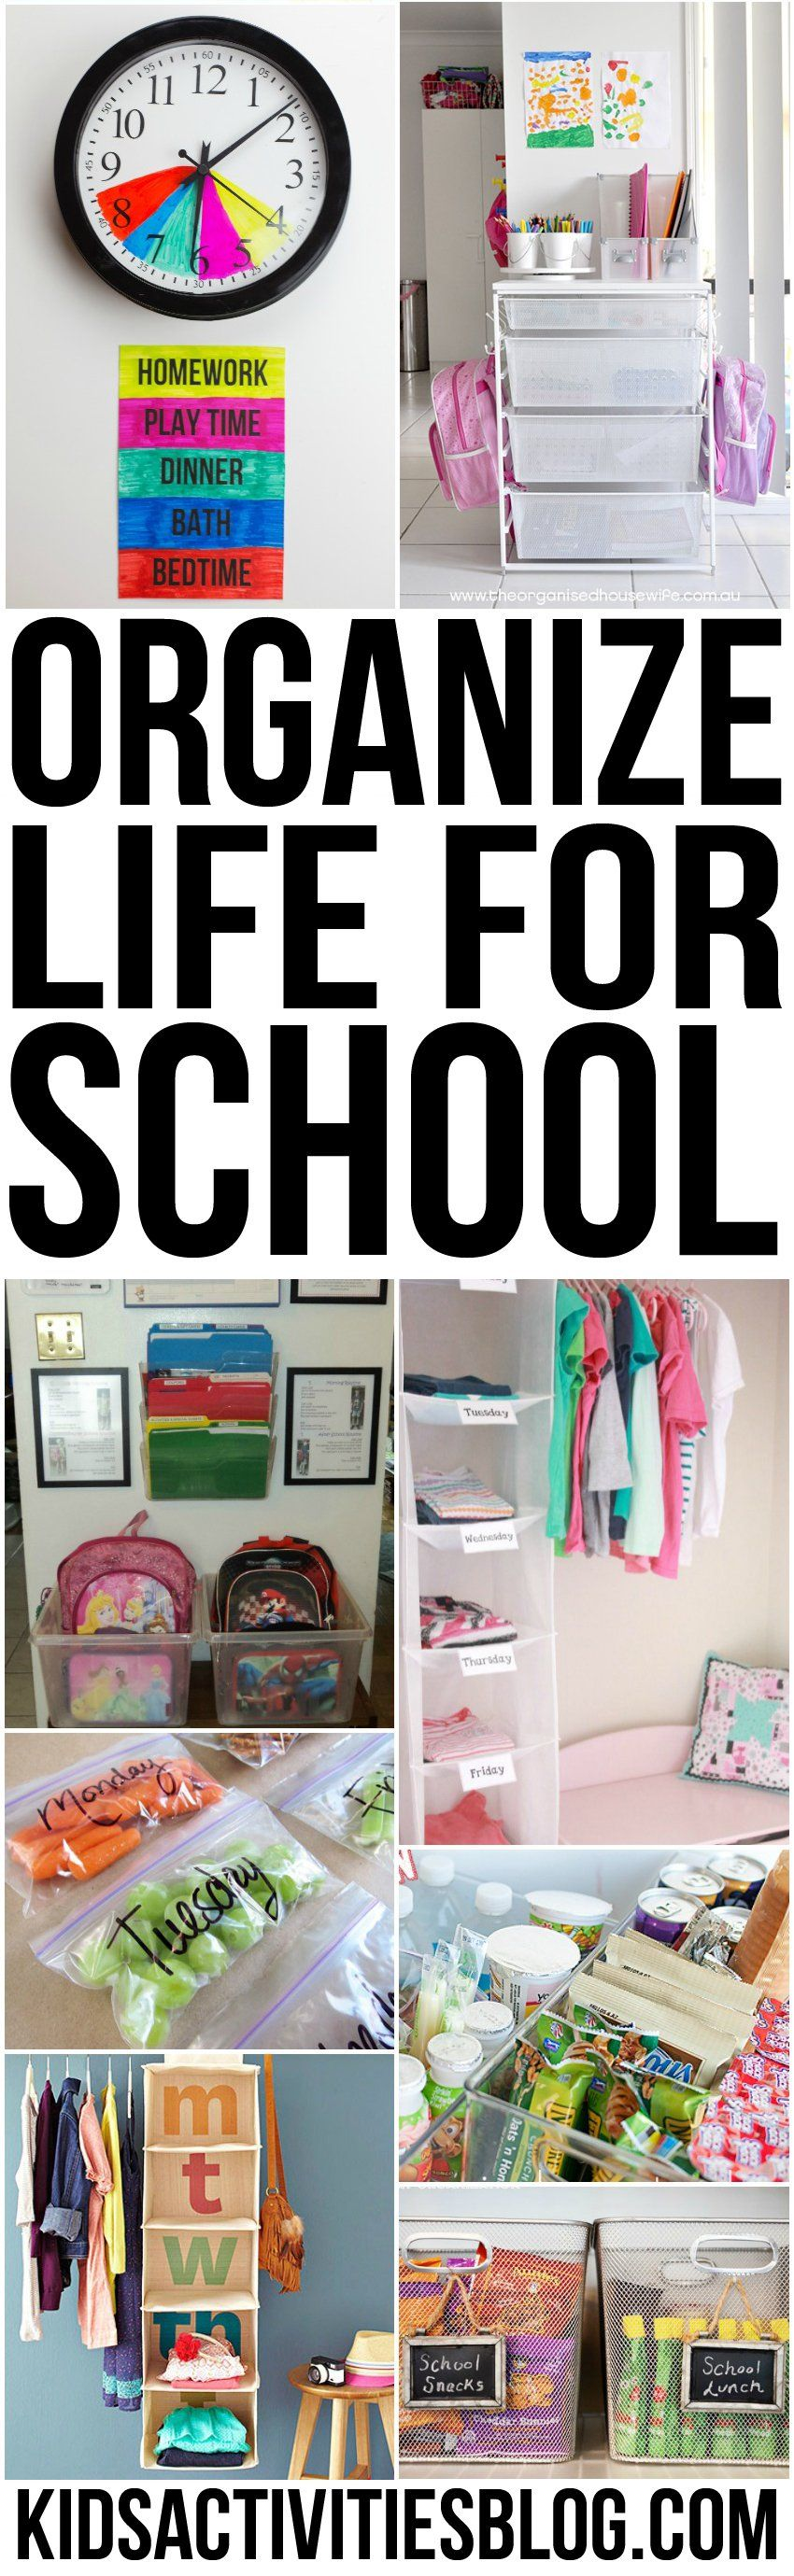 Forum on this topic: 9 Back-to-School Clutter Busters, 9-back-to-school-clutter-busters/